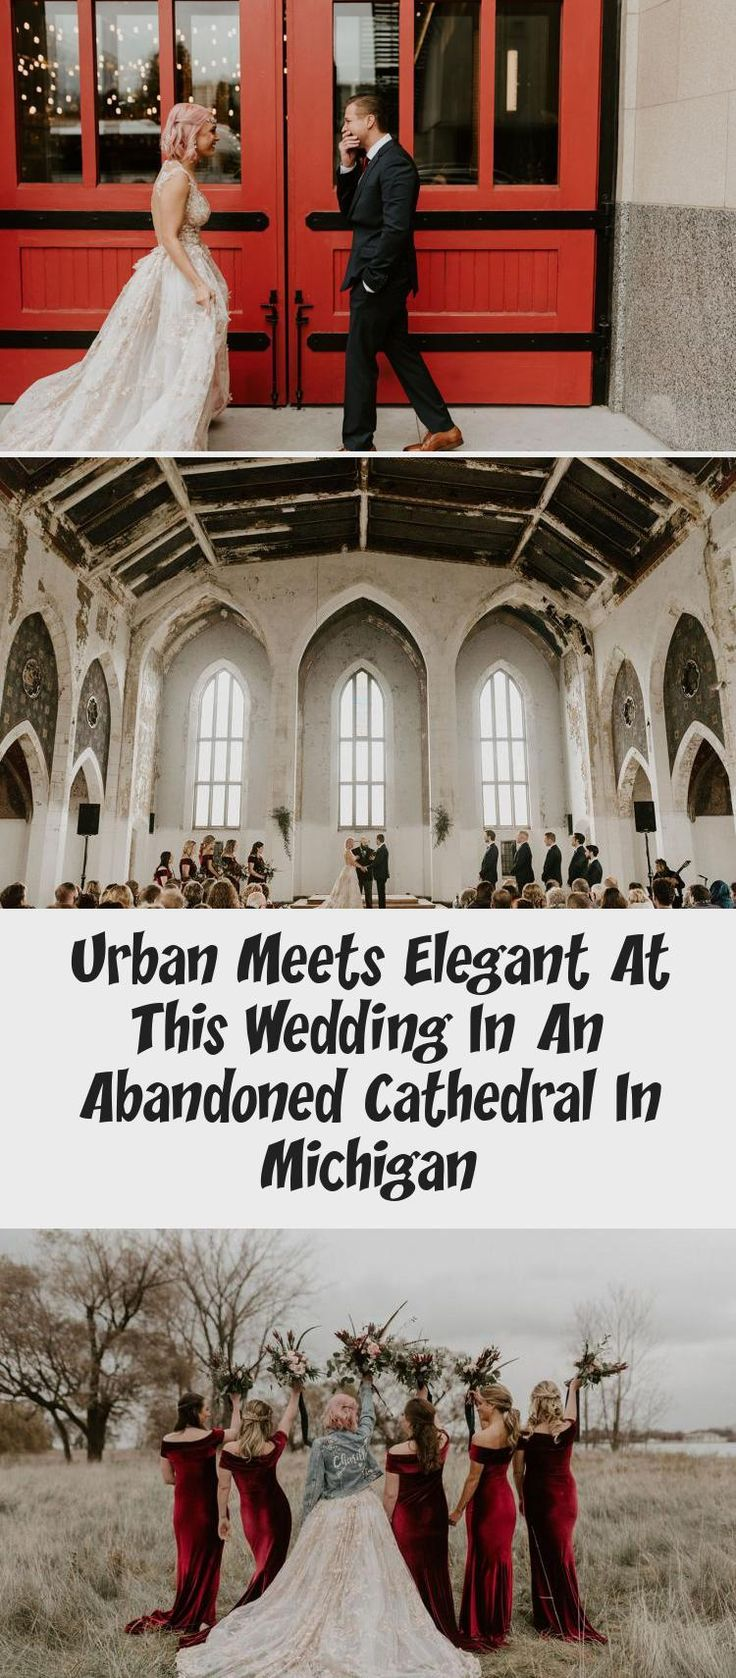 Urban Meets Elegant at this Wedding in an Abandoned Cathedral in Michigan - Green Wedding Shoes #MixAndMatchBridesmaidDresses #BridesmaidDressesBeach #IvoryBridesmaidDresses #BridesmaidDressesMint #WeddingBridesmaidDresses